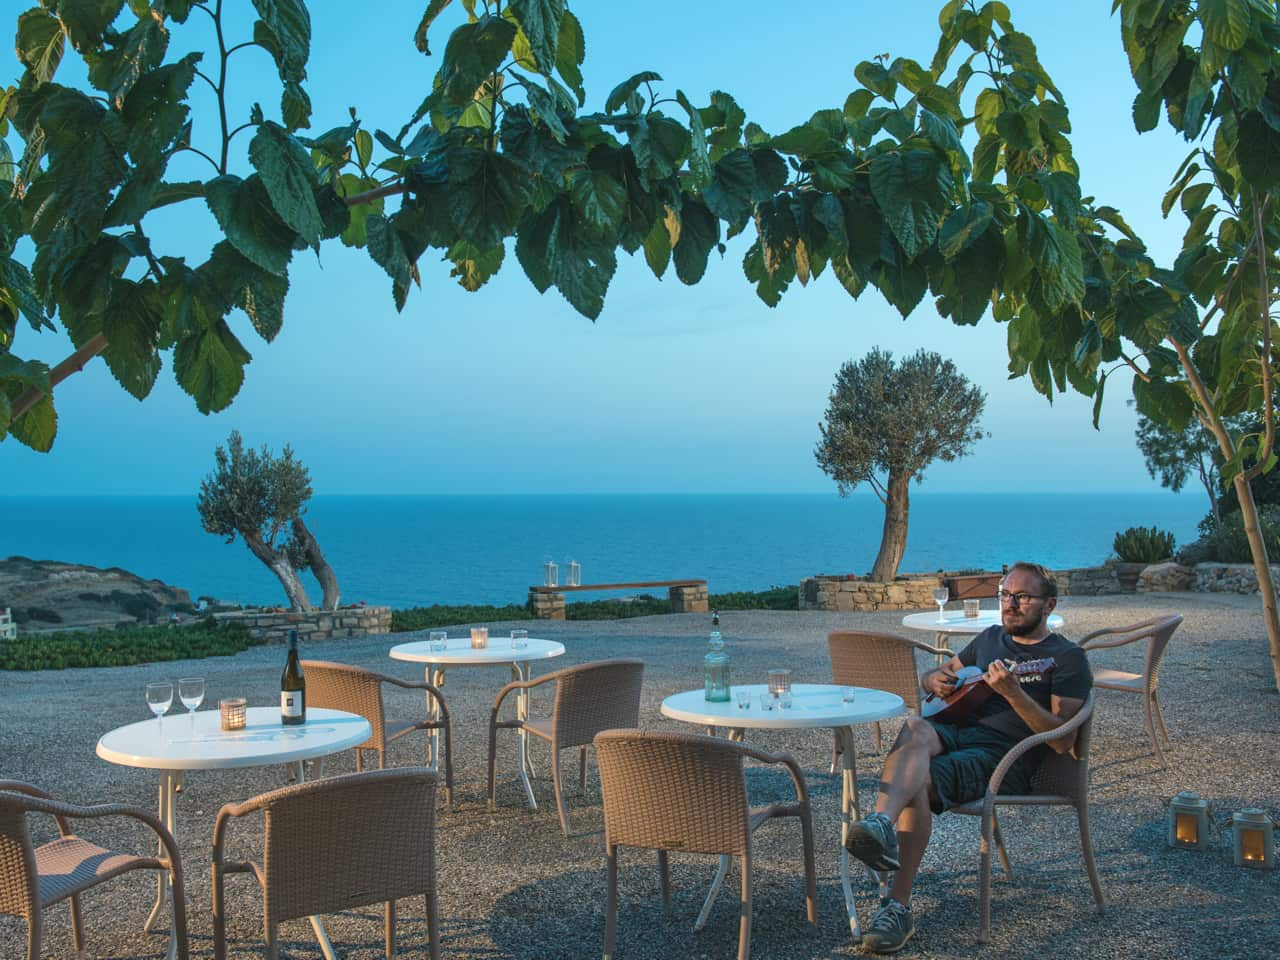 What Could Be Better - Notos Apartments Triopetra - Rethimno - Crete